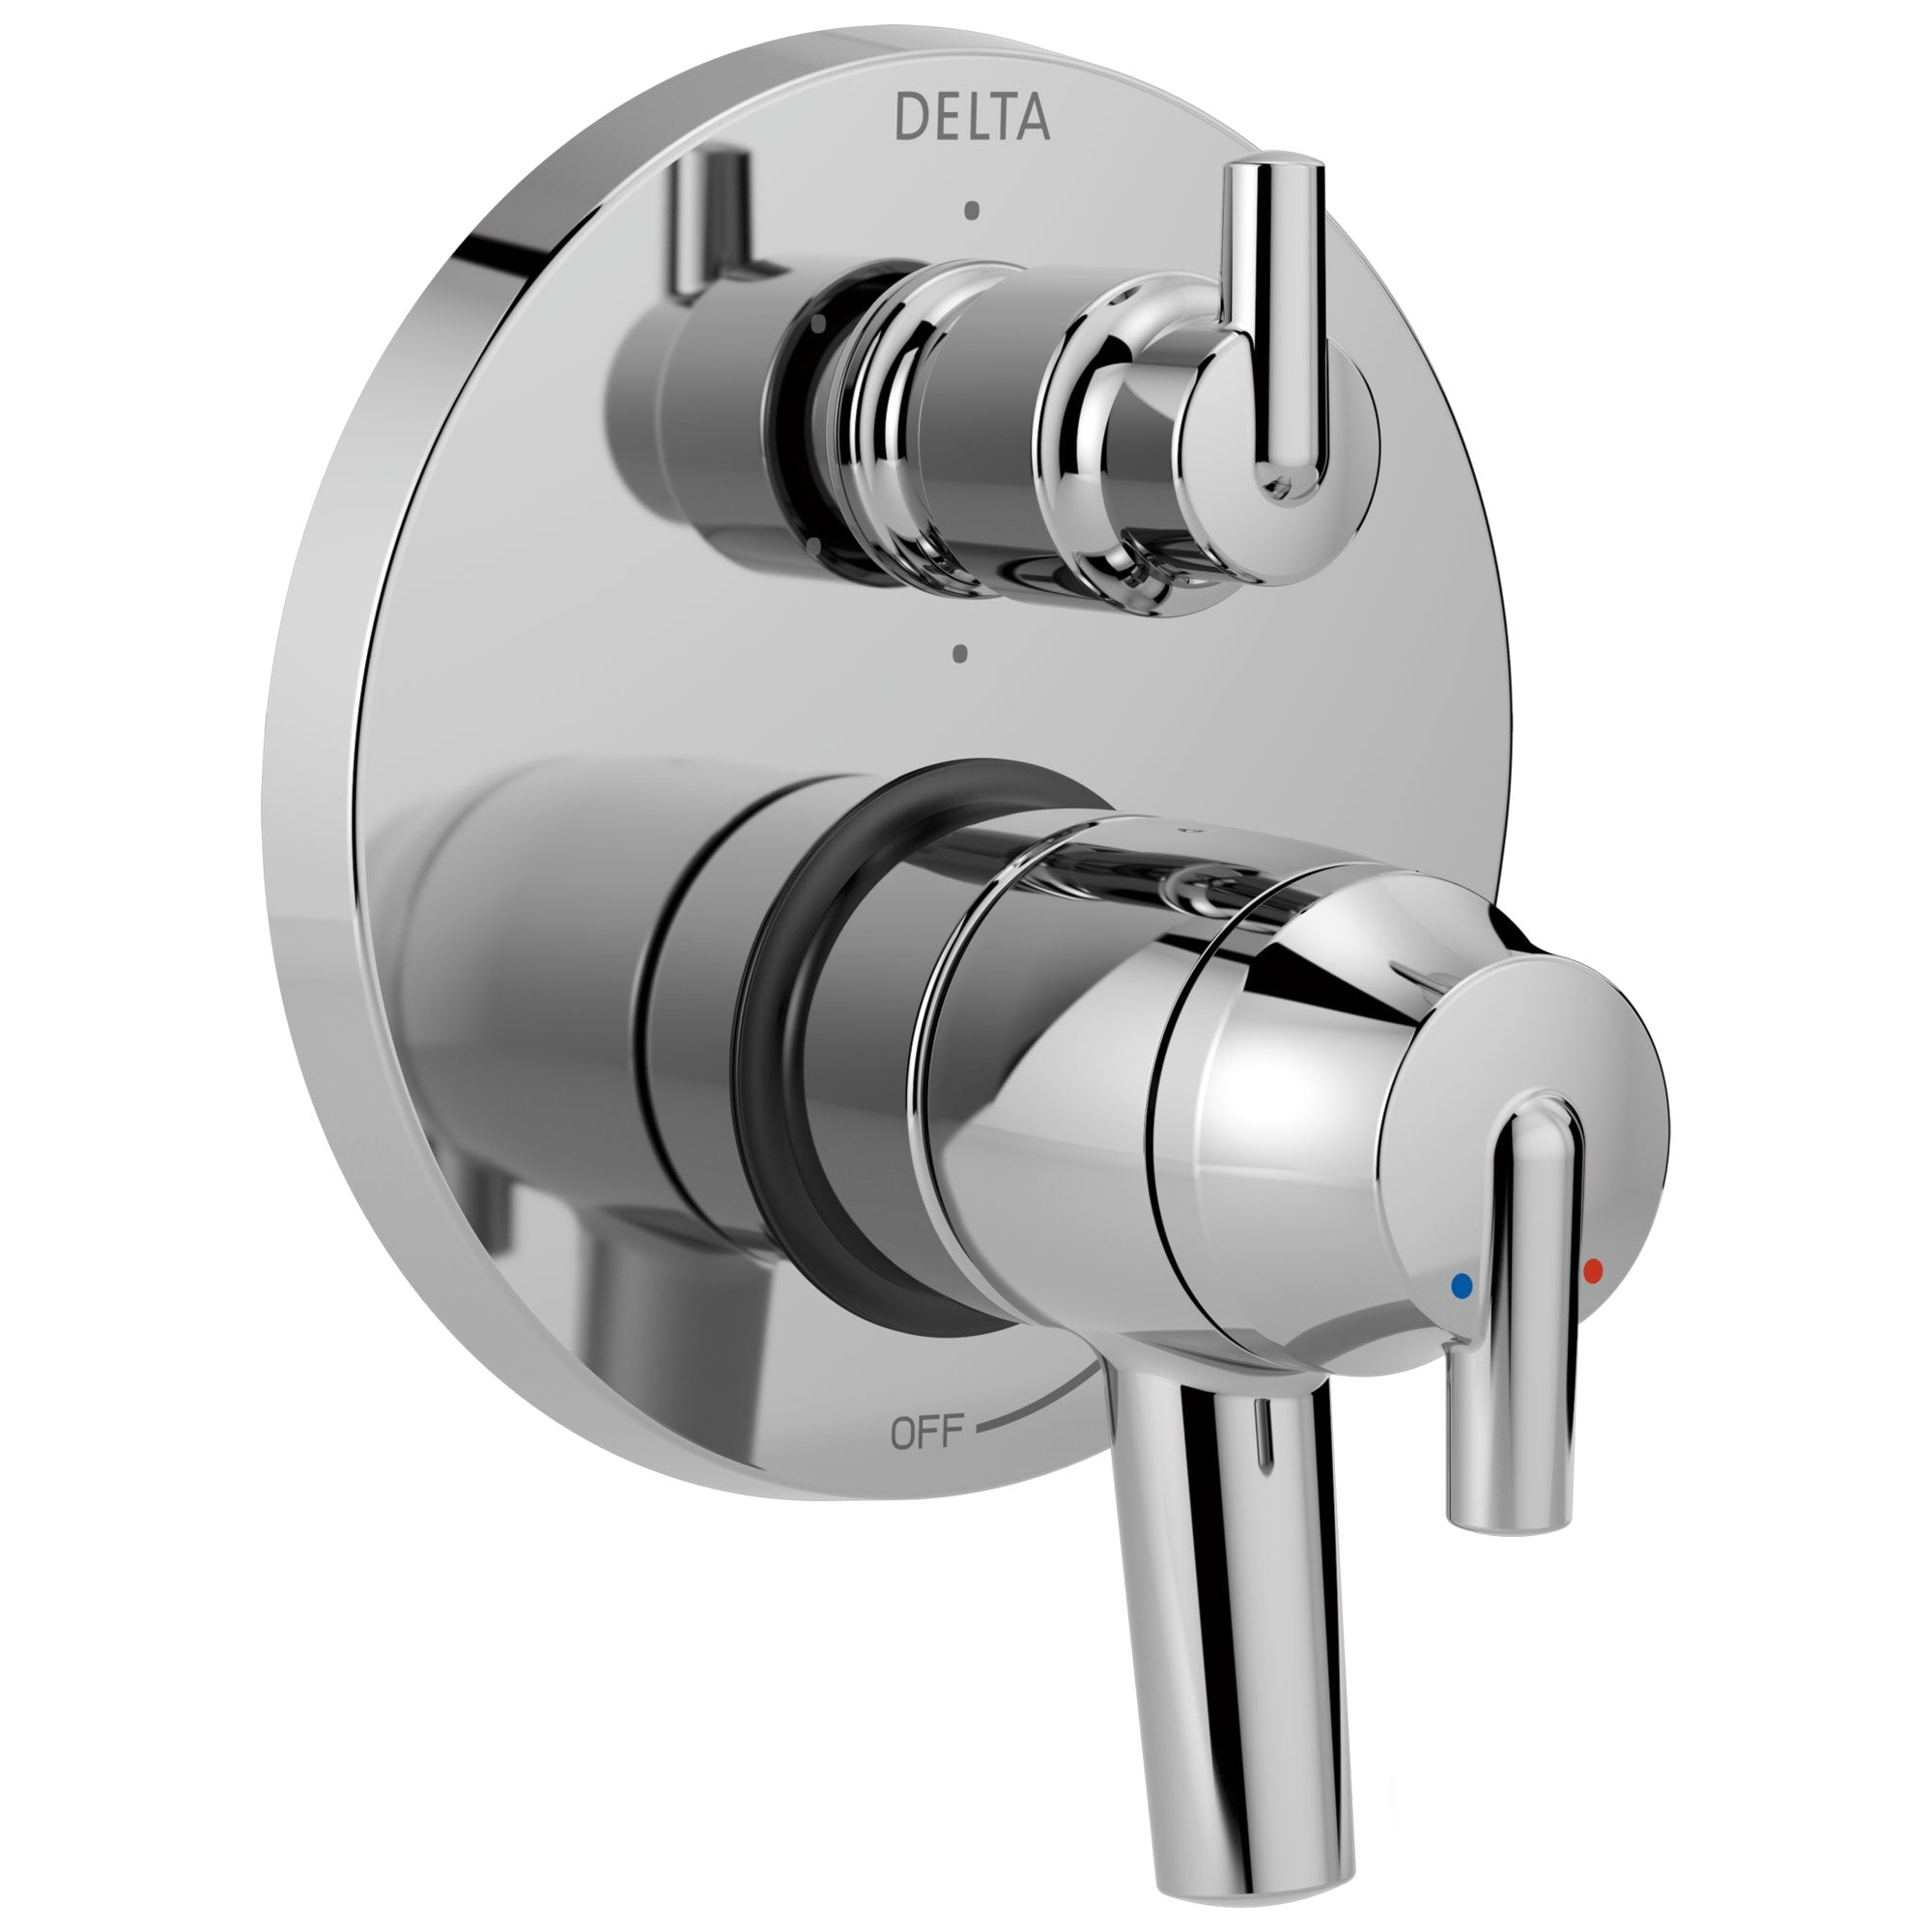 Delta Trinsic Collection Chrome Contemporary Monitor 17 Shower Faucet Control Handle with 6-Setting Integrated Diverter Trim (Requires Valve) DT27959